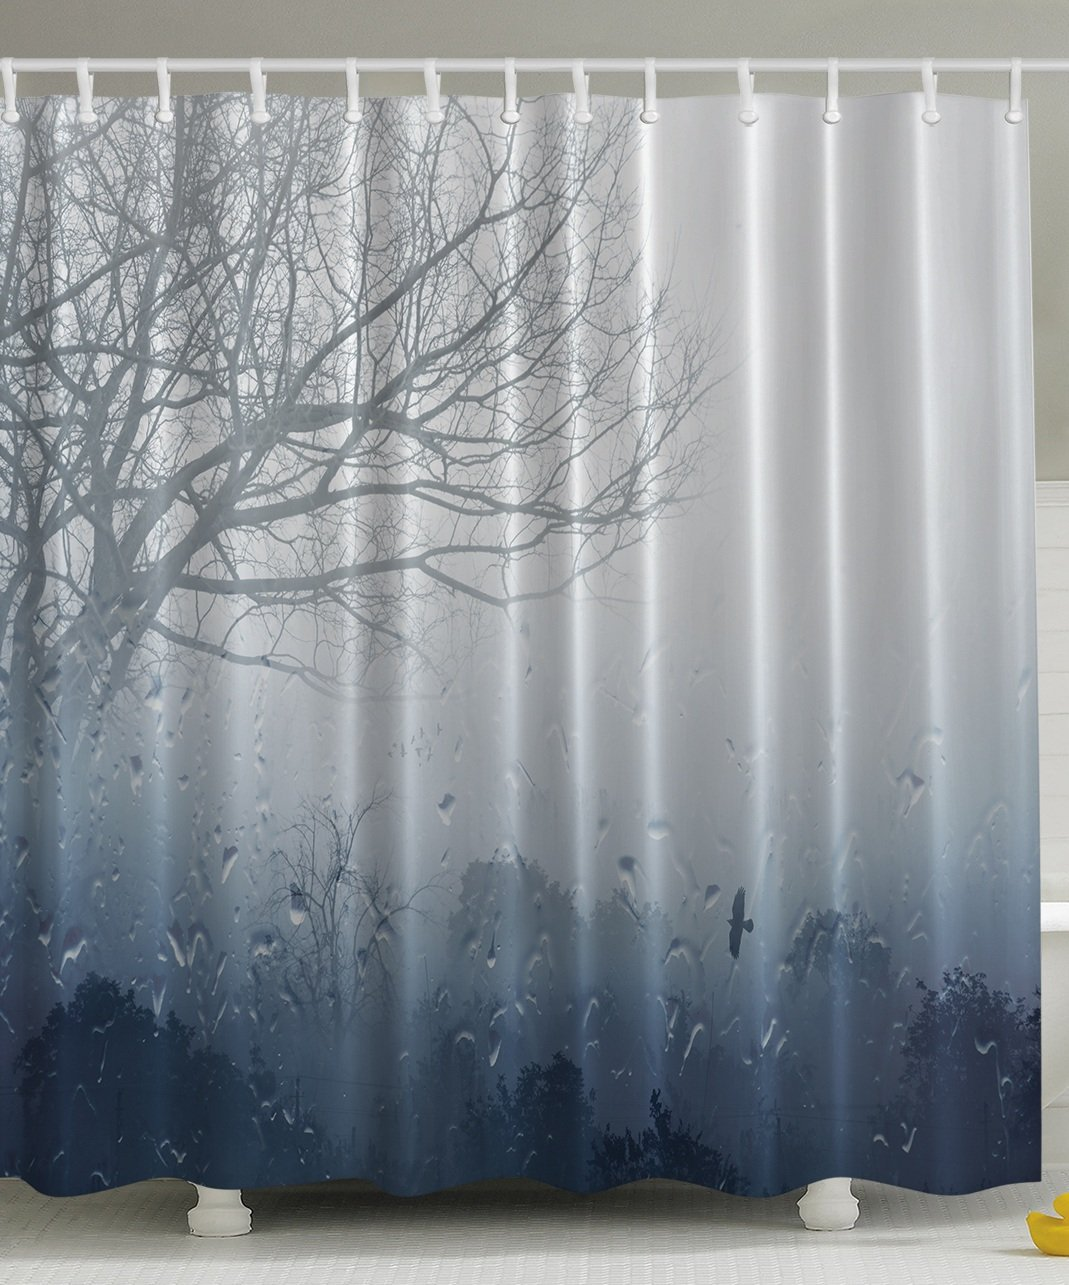 Romantic shower curtain -  Art Prints Romantic Window Water Drops View Melancholia Therapy Lonely Tree Unique Bath Decor Polyester Fabric Shower Curtain Gray Denim Home Kitchen